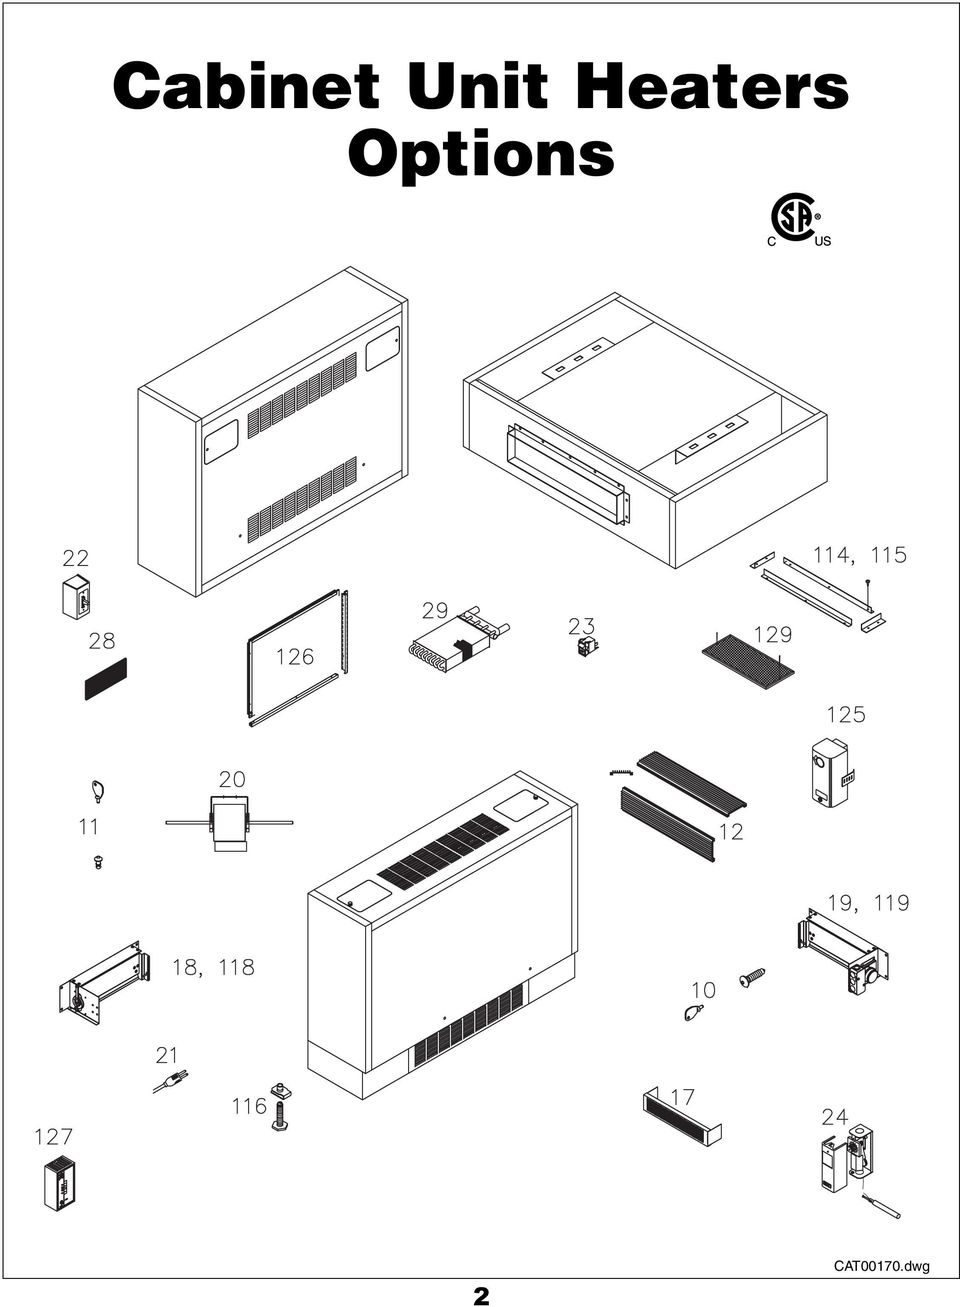 scvo-3  cabinet unit heater options booklet